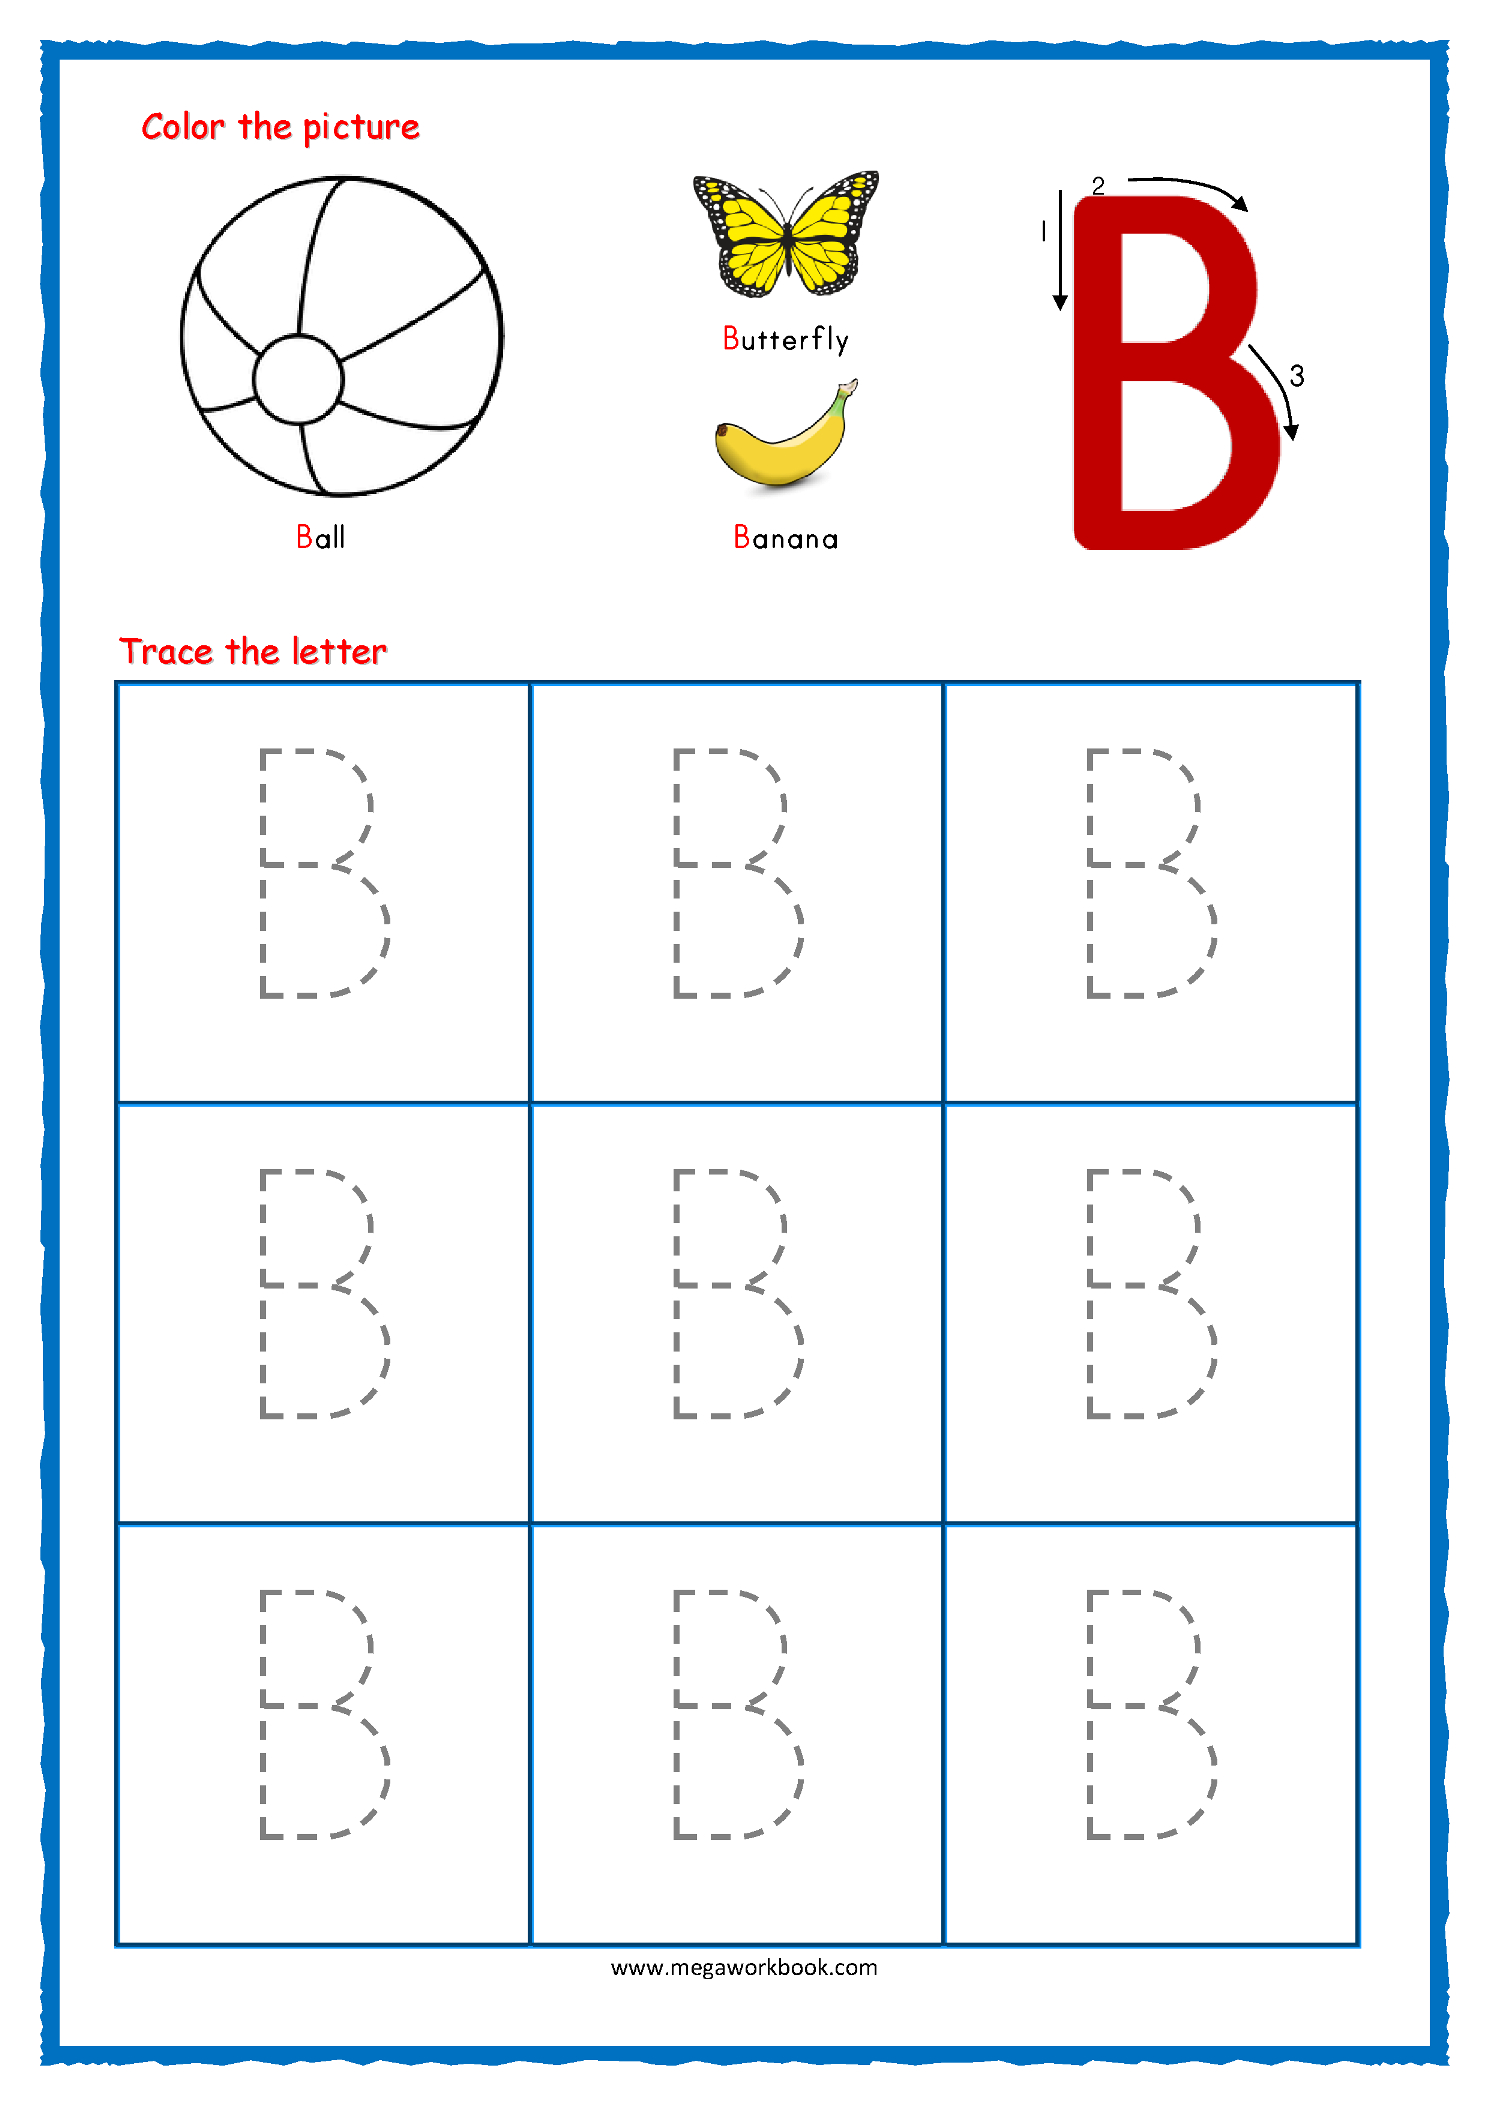 Tracing Letters - Alphabet Tracing - Capital Letters within Alphabet Tracing Sheets Printable